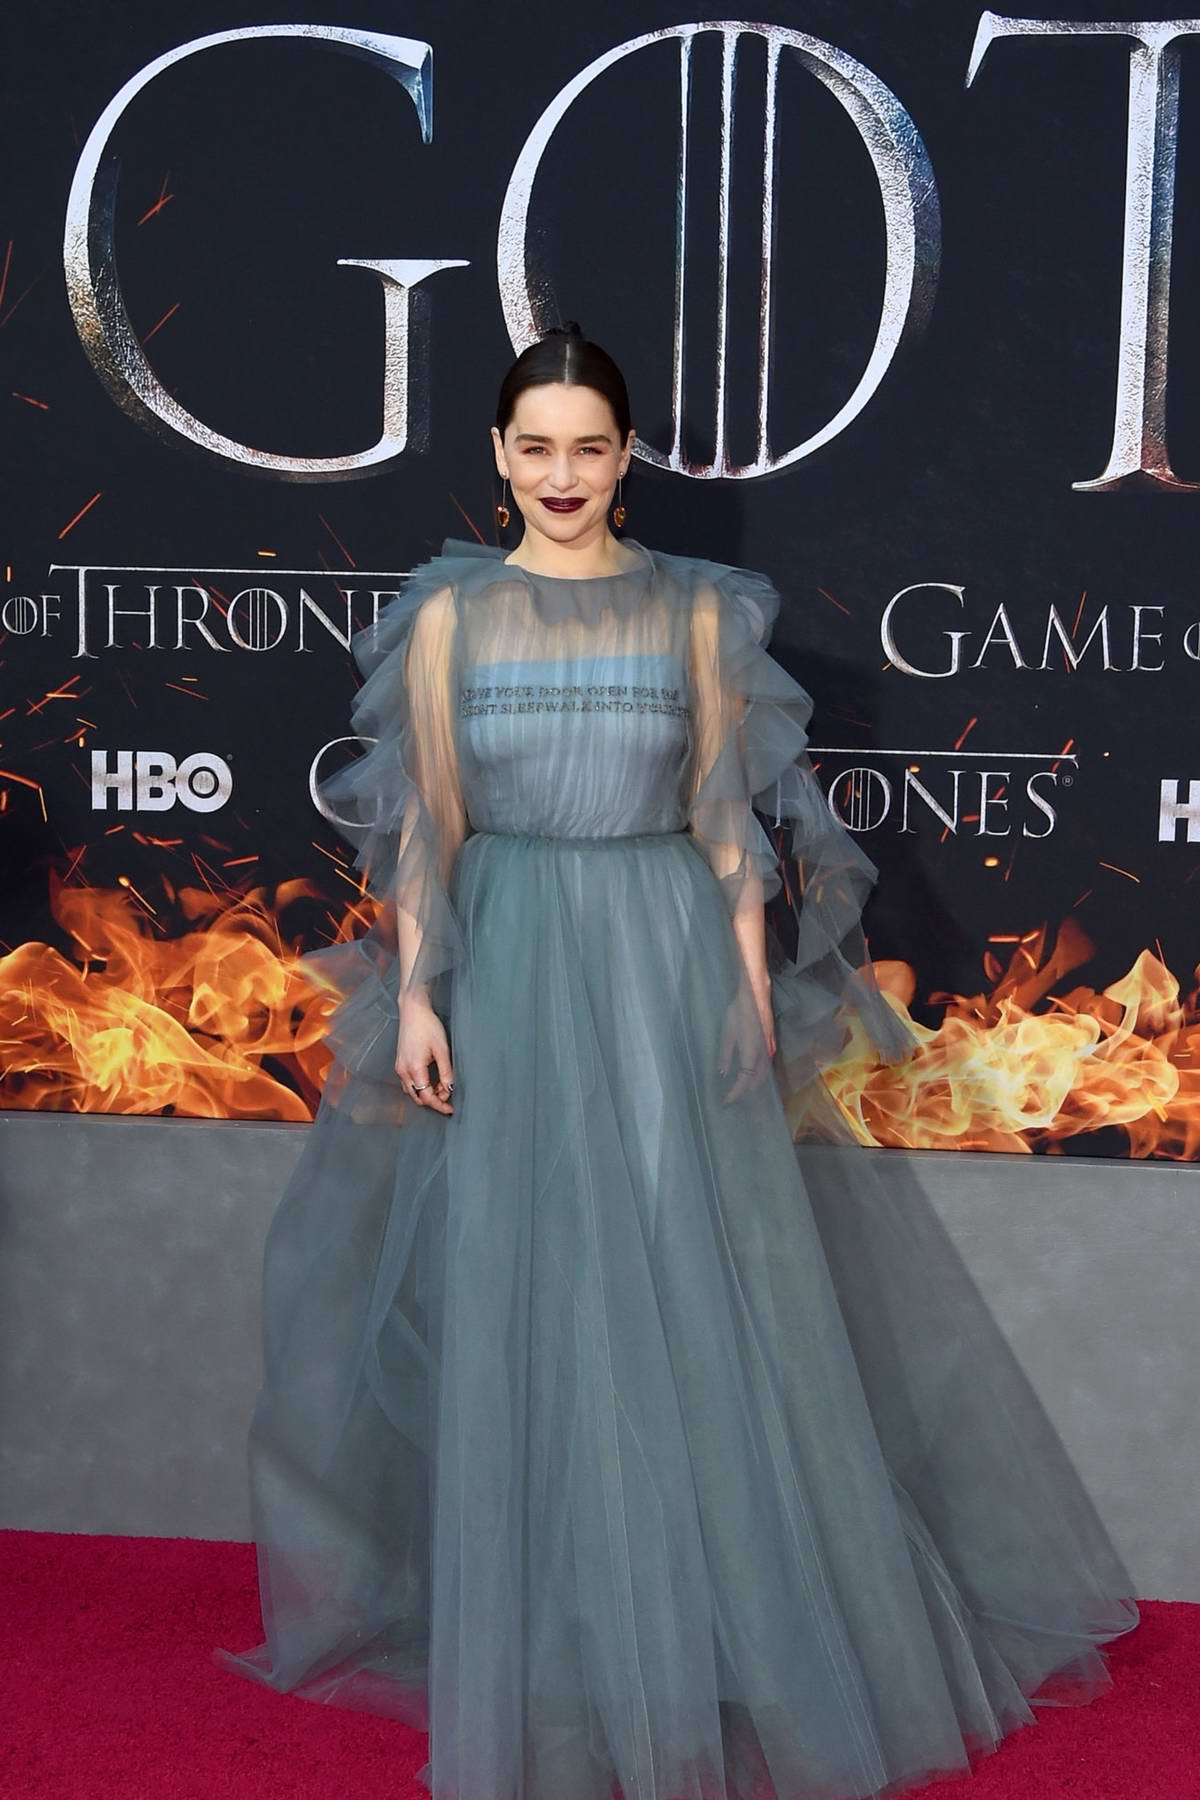 Emilia Clarke attends the Season 8 premiere of 'Game of Thrones' at Radio City Music Hall in New York City